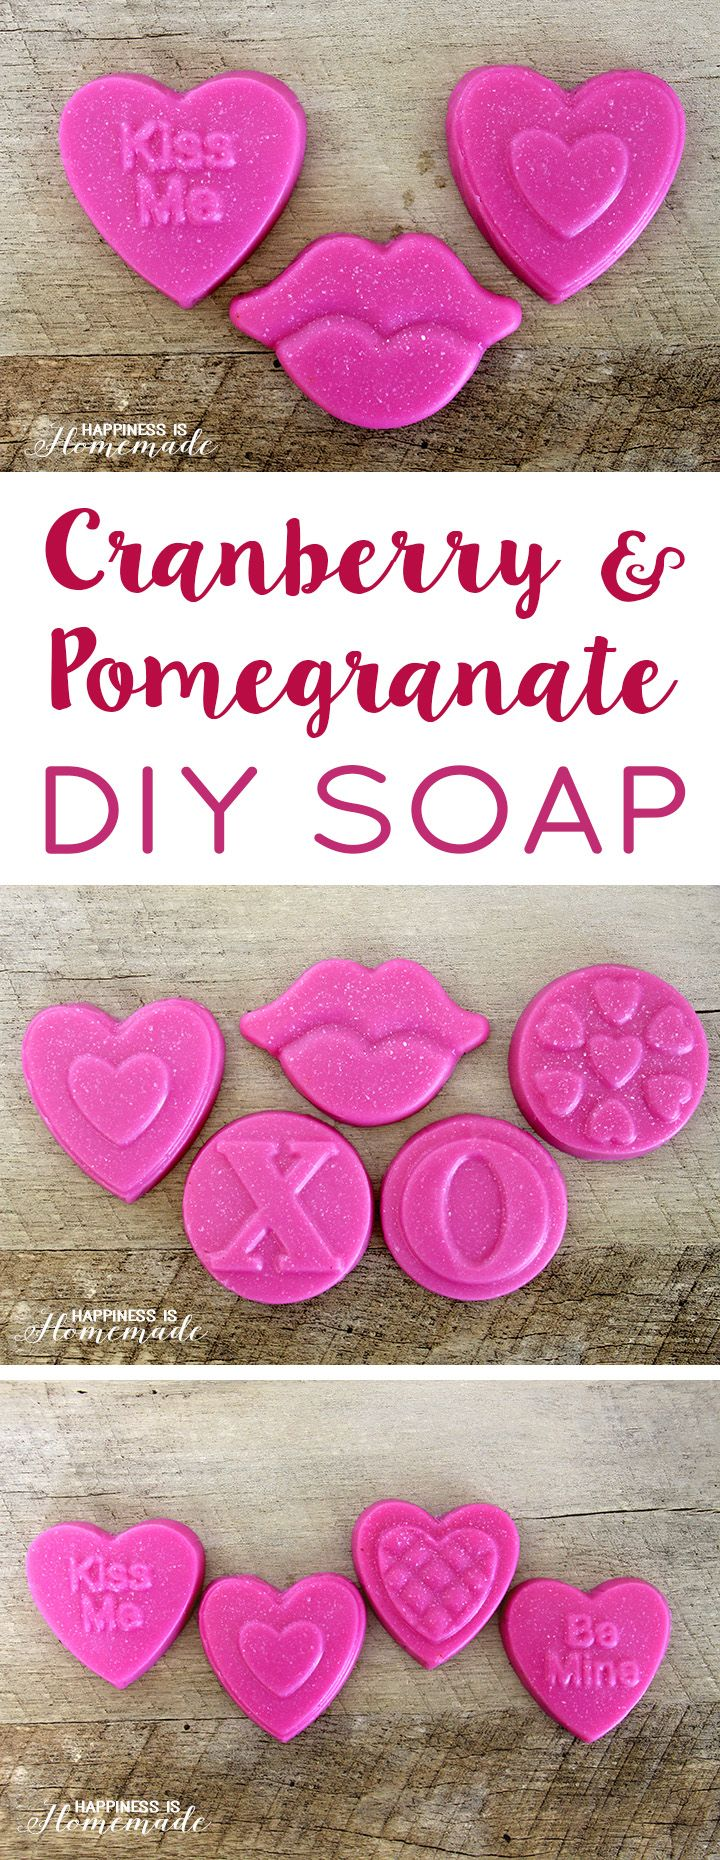 DIY Cranberry + Pomegranate Soap